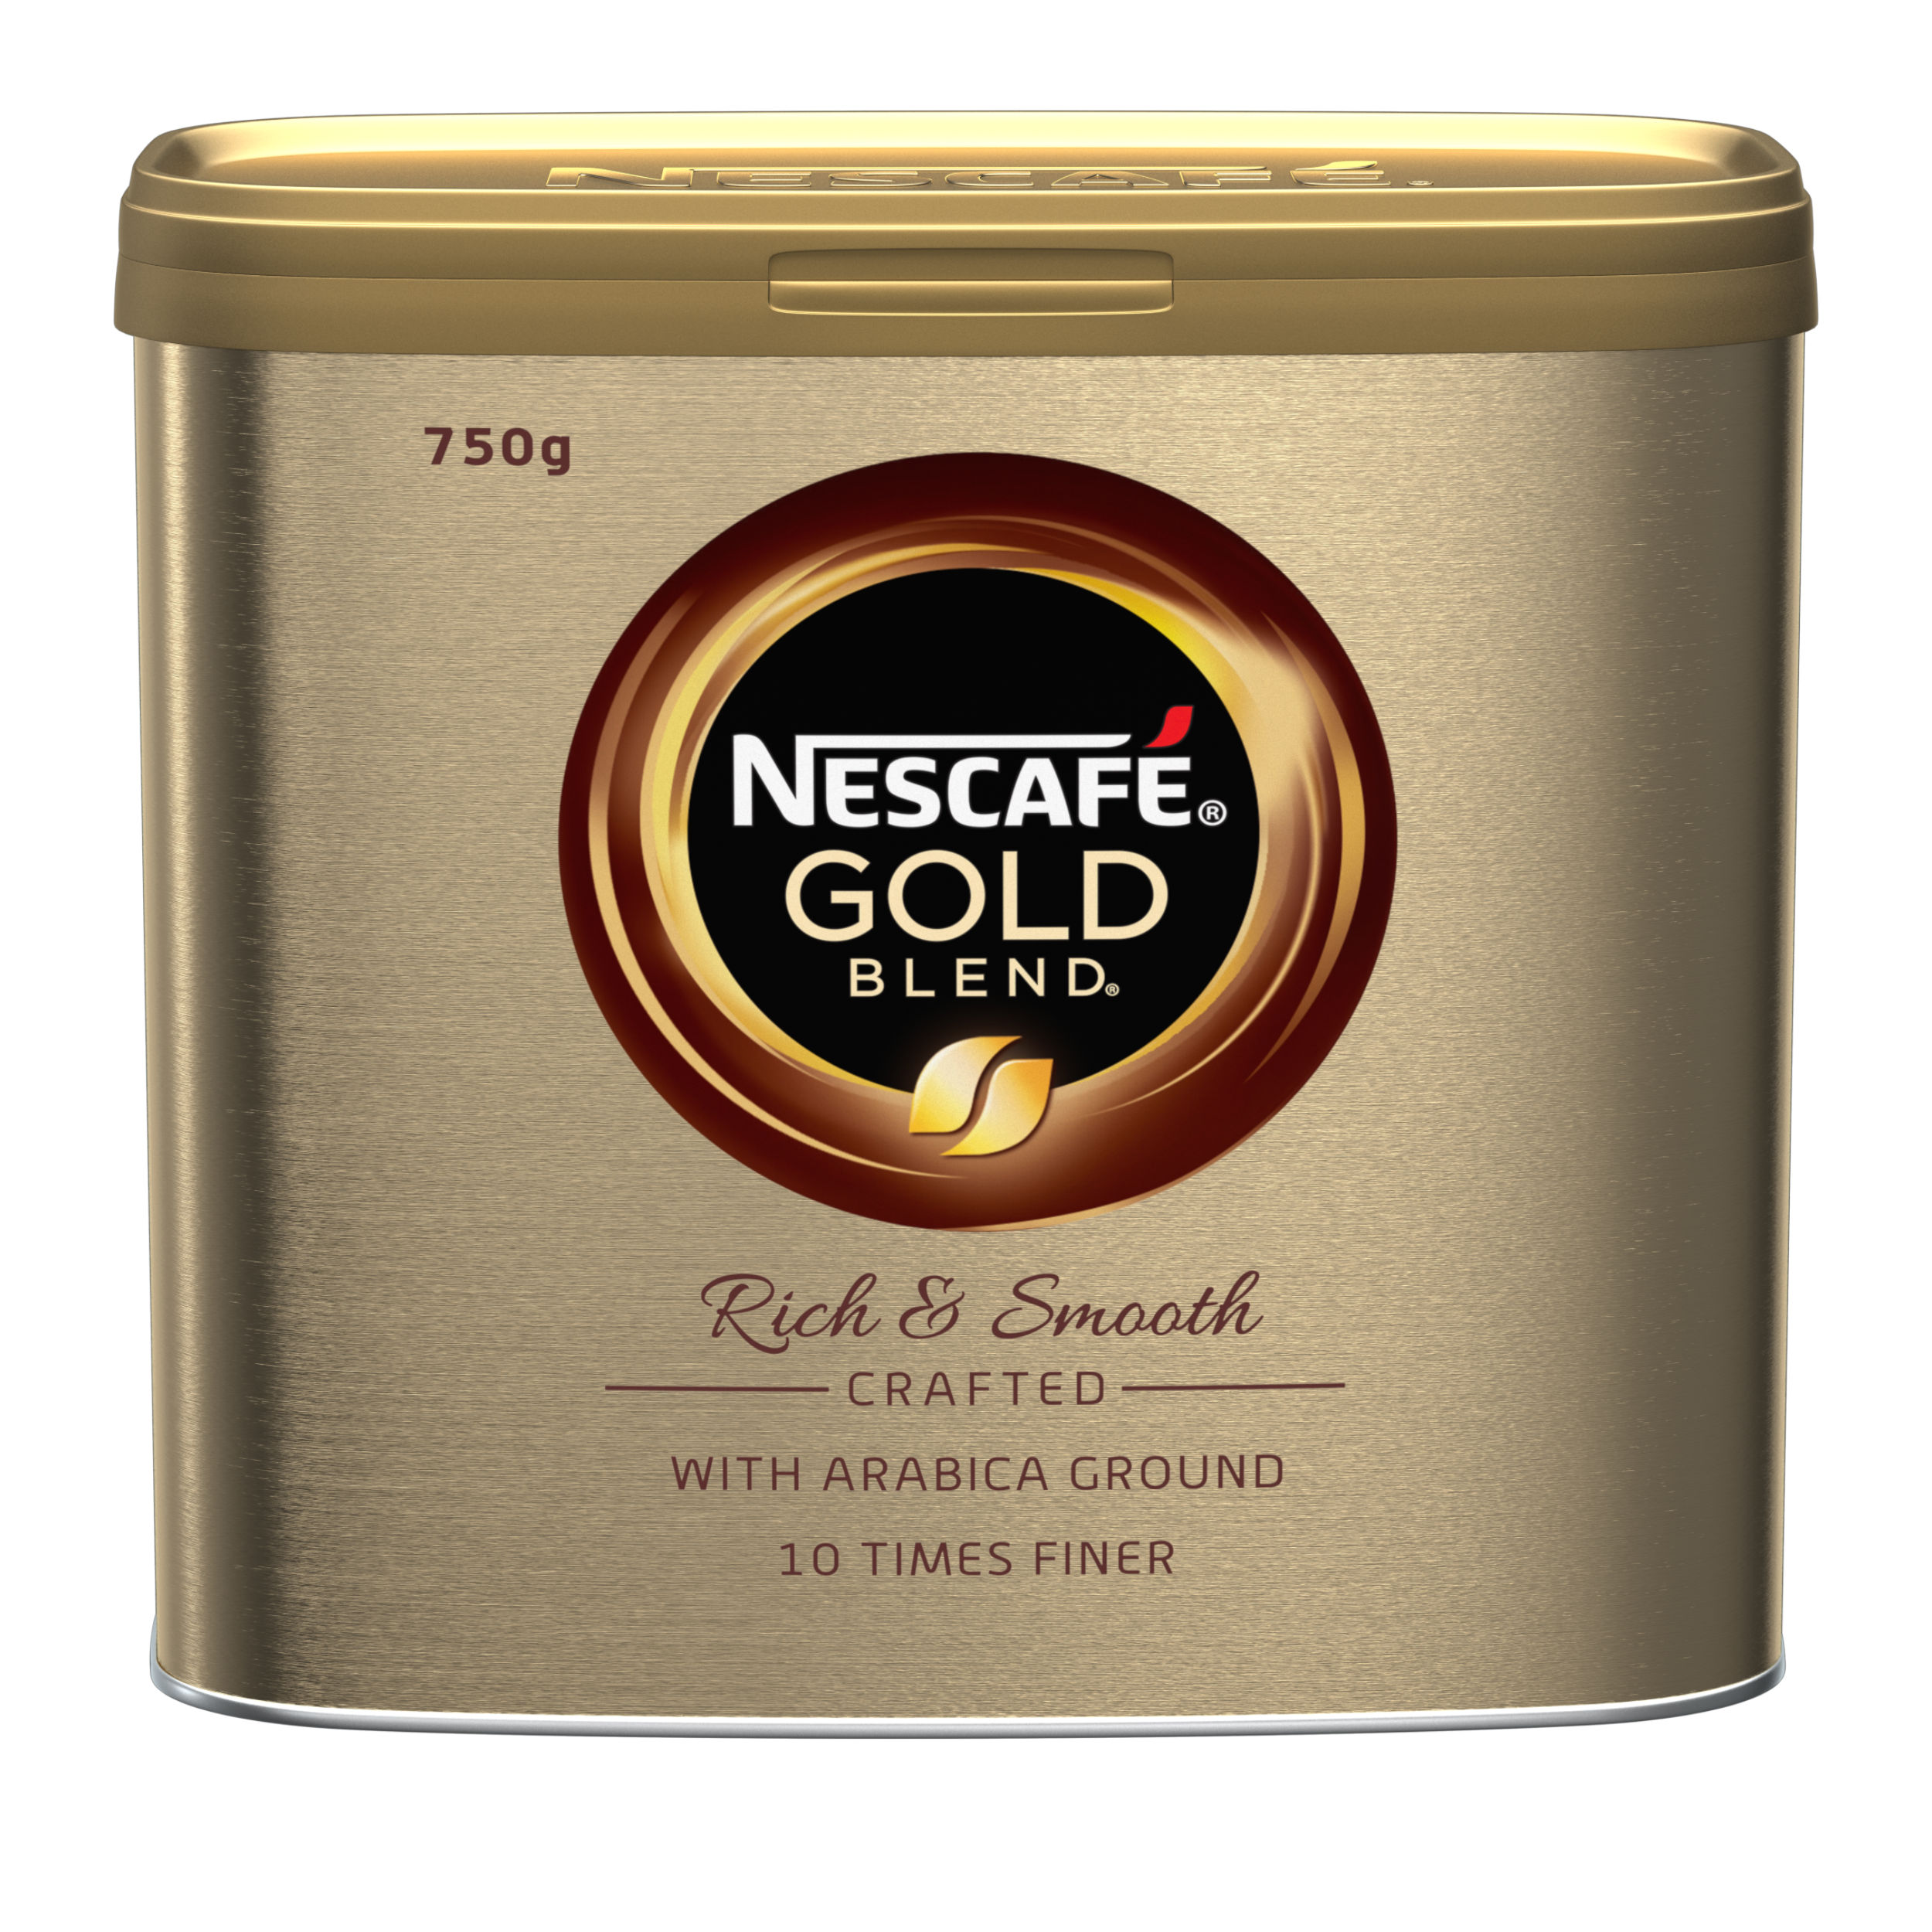 Nescafe Gold Blend Instant Coffee Tin 750g Ref 12339209